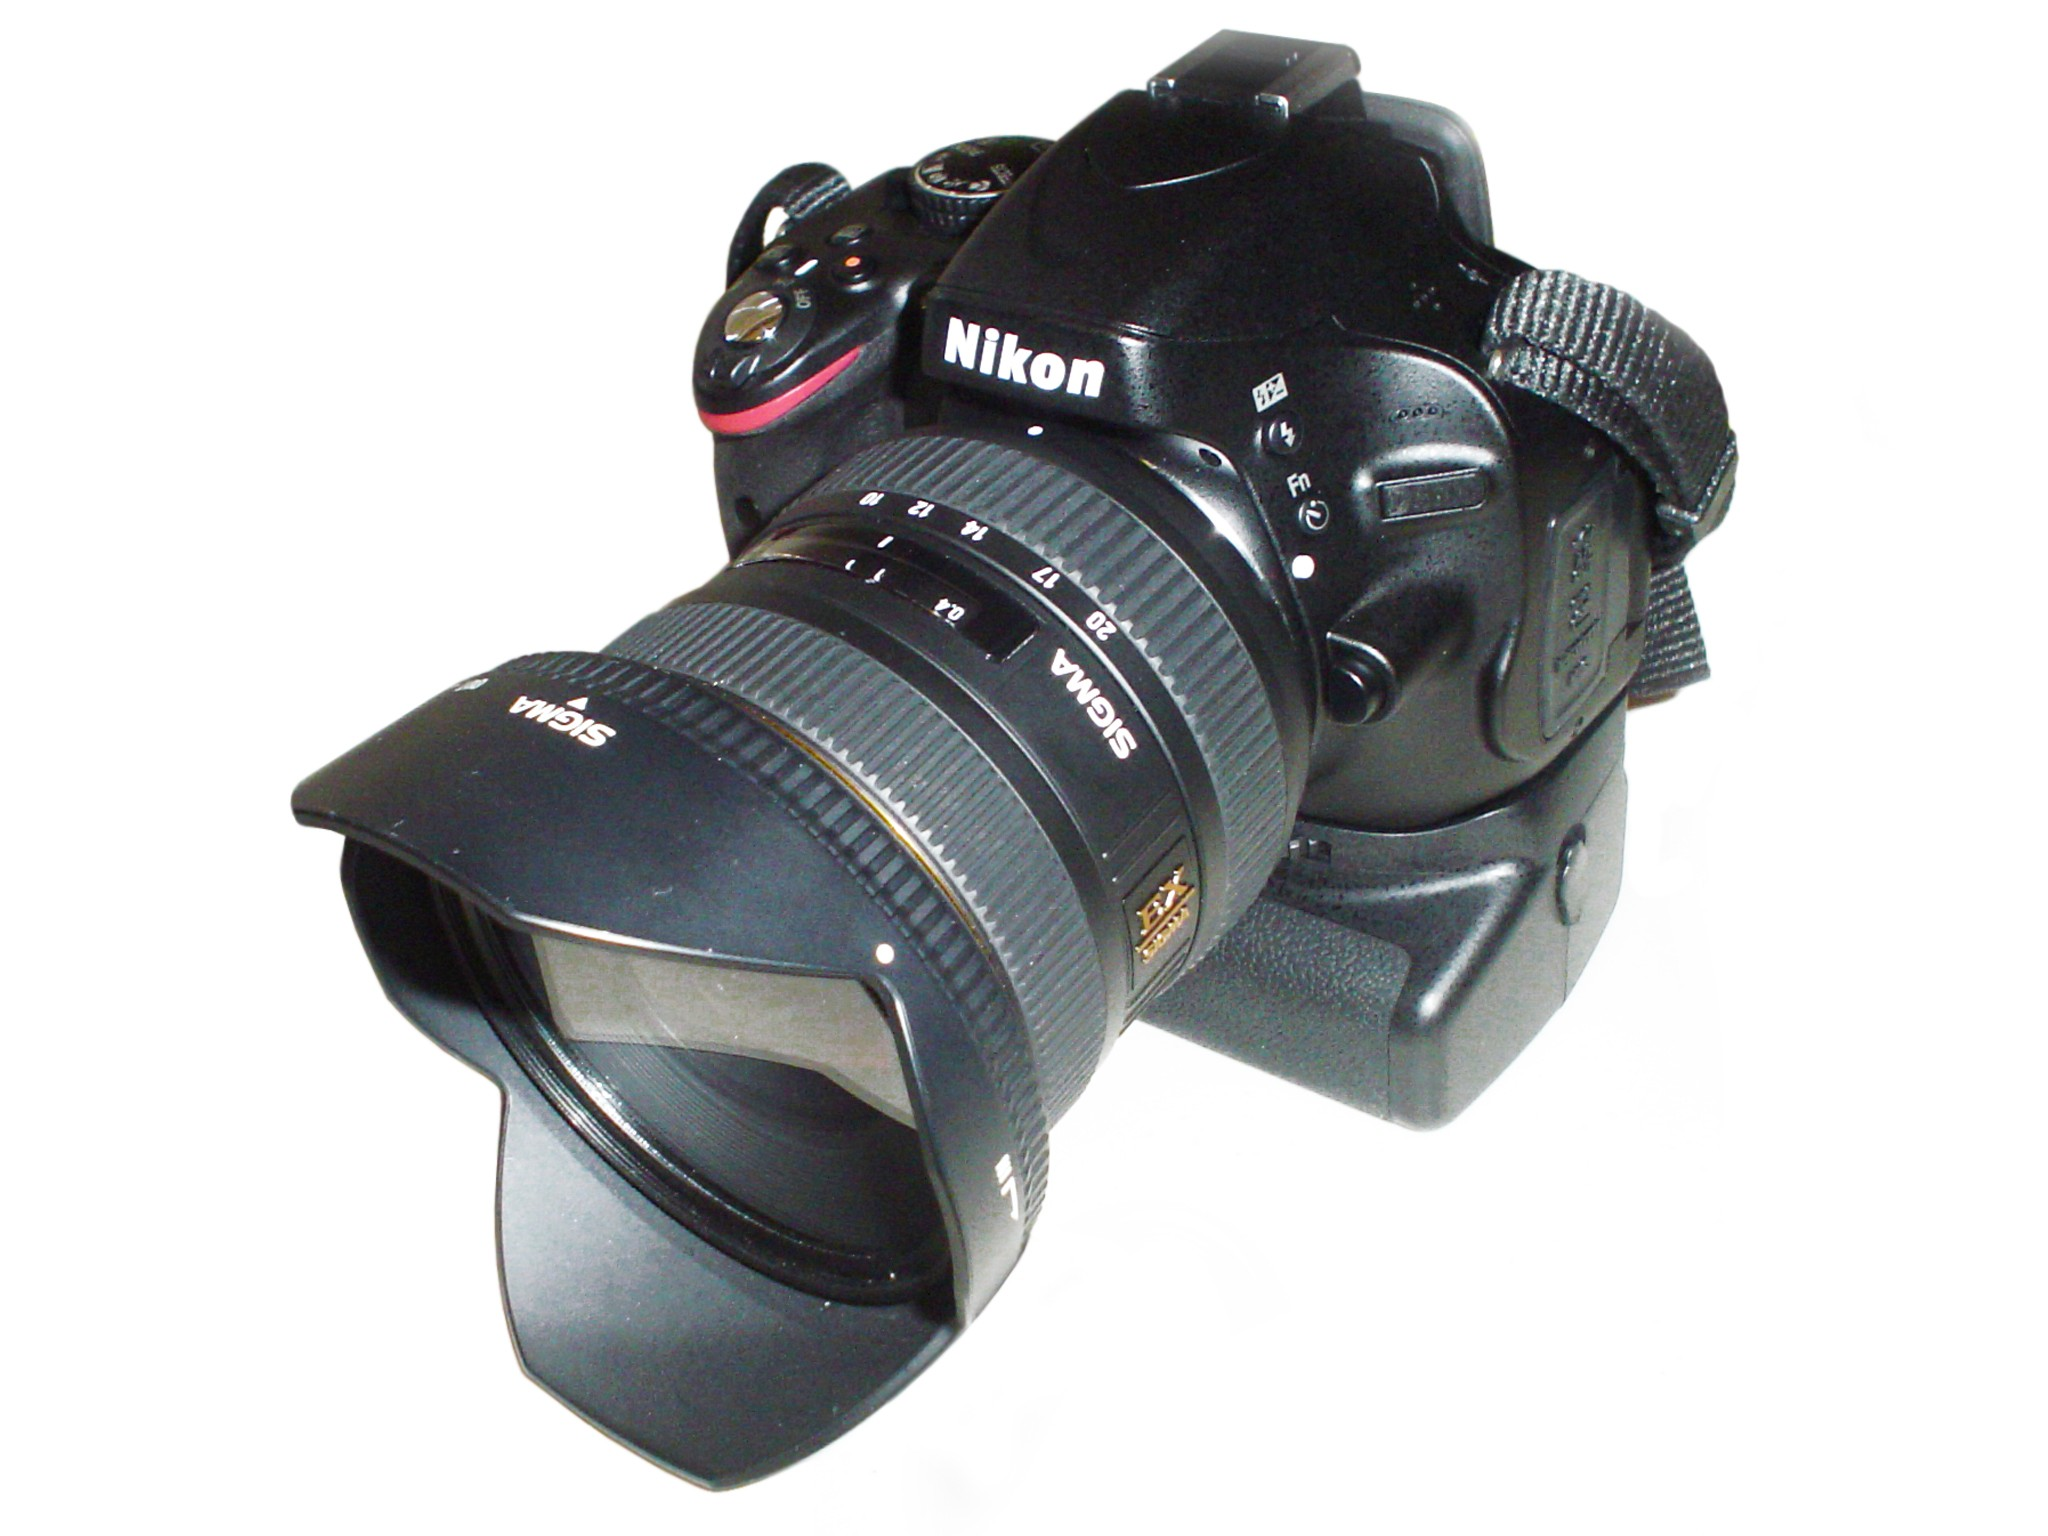 Best Nikon D5100 Vertical Battery Grip